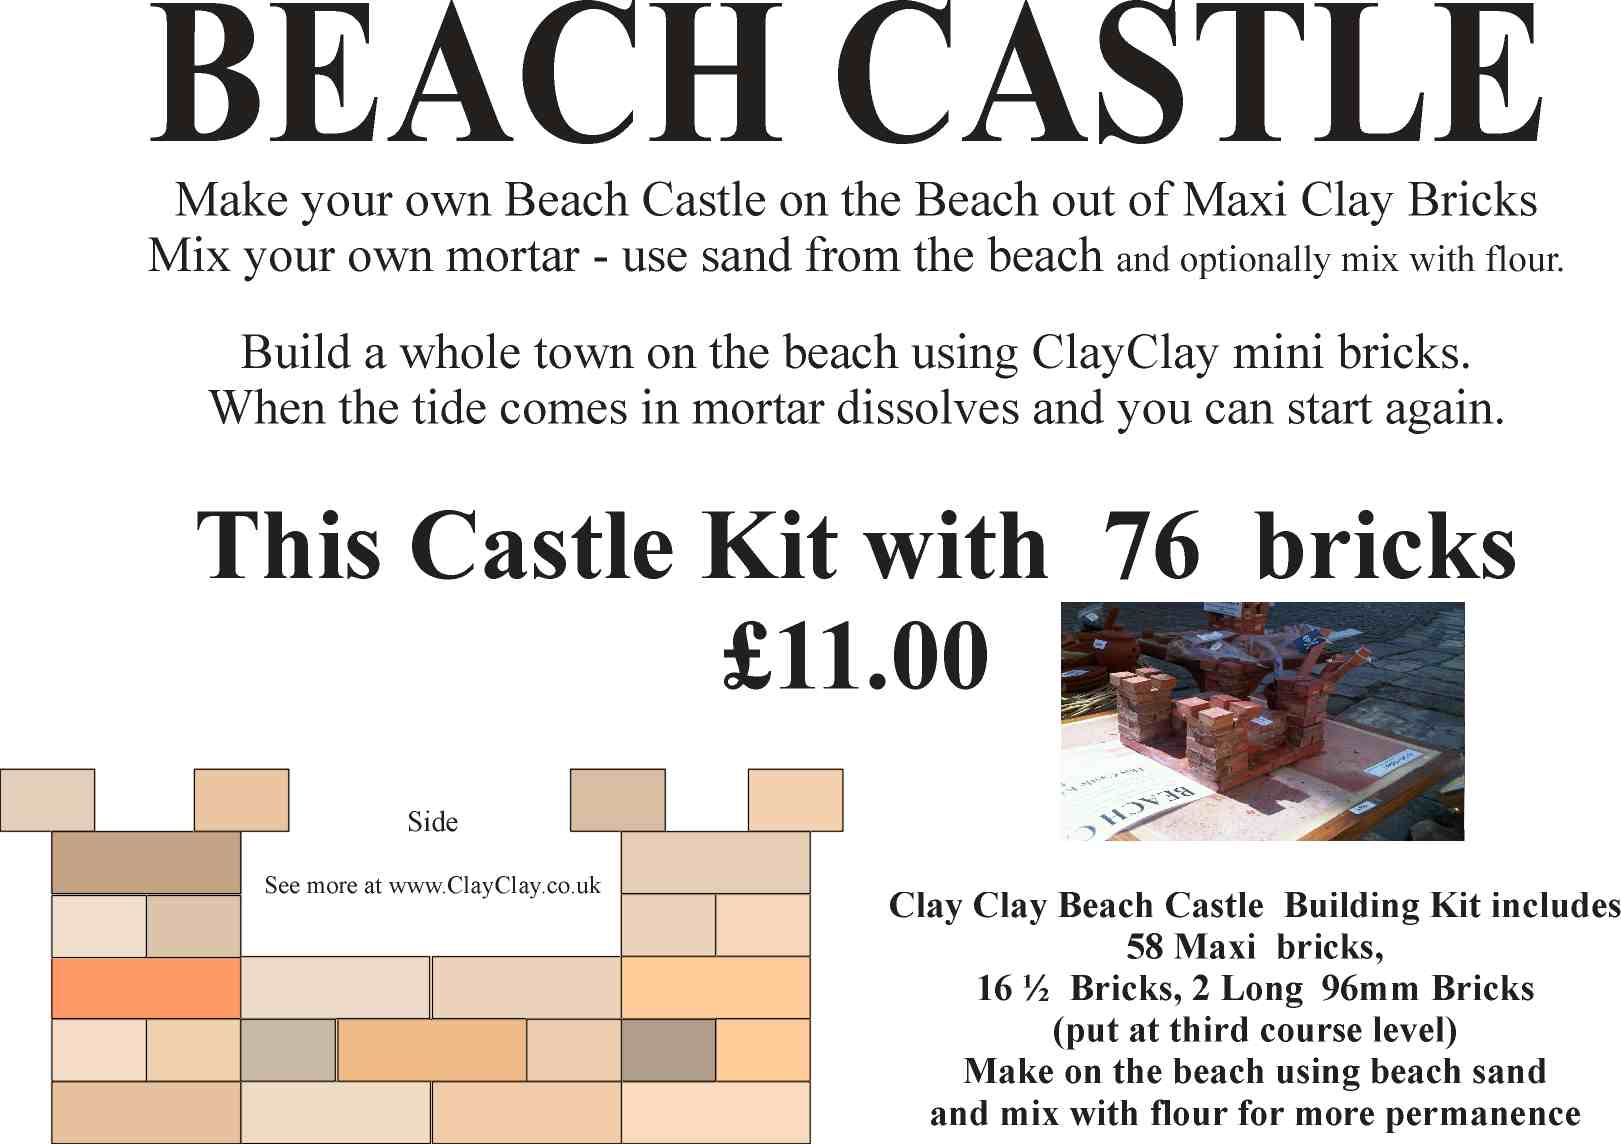 Beach Castle Kit Maxi Bricks. Make own the beach and use Beach sand mixed with flour as mortar.